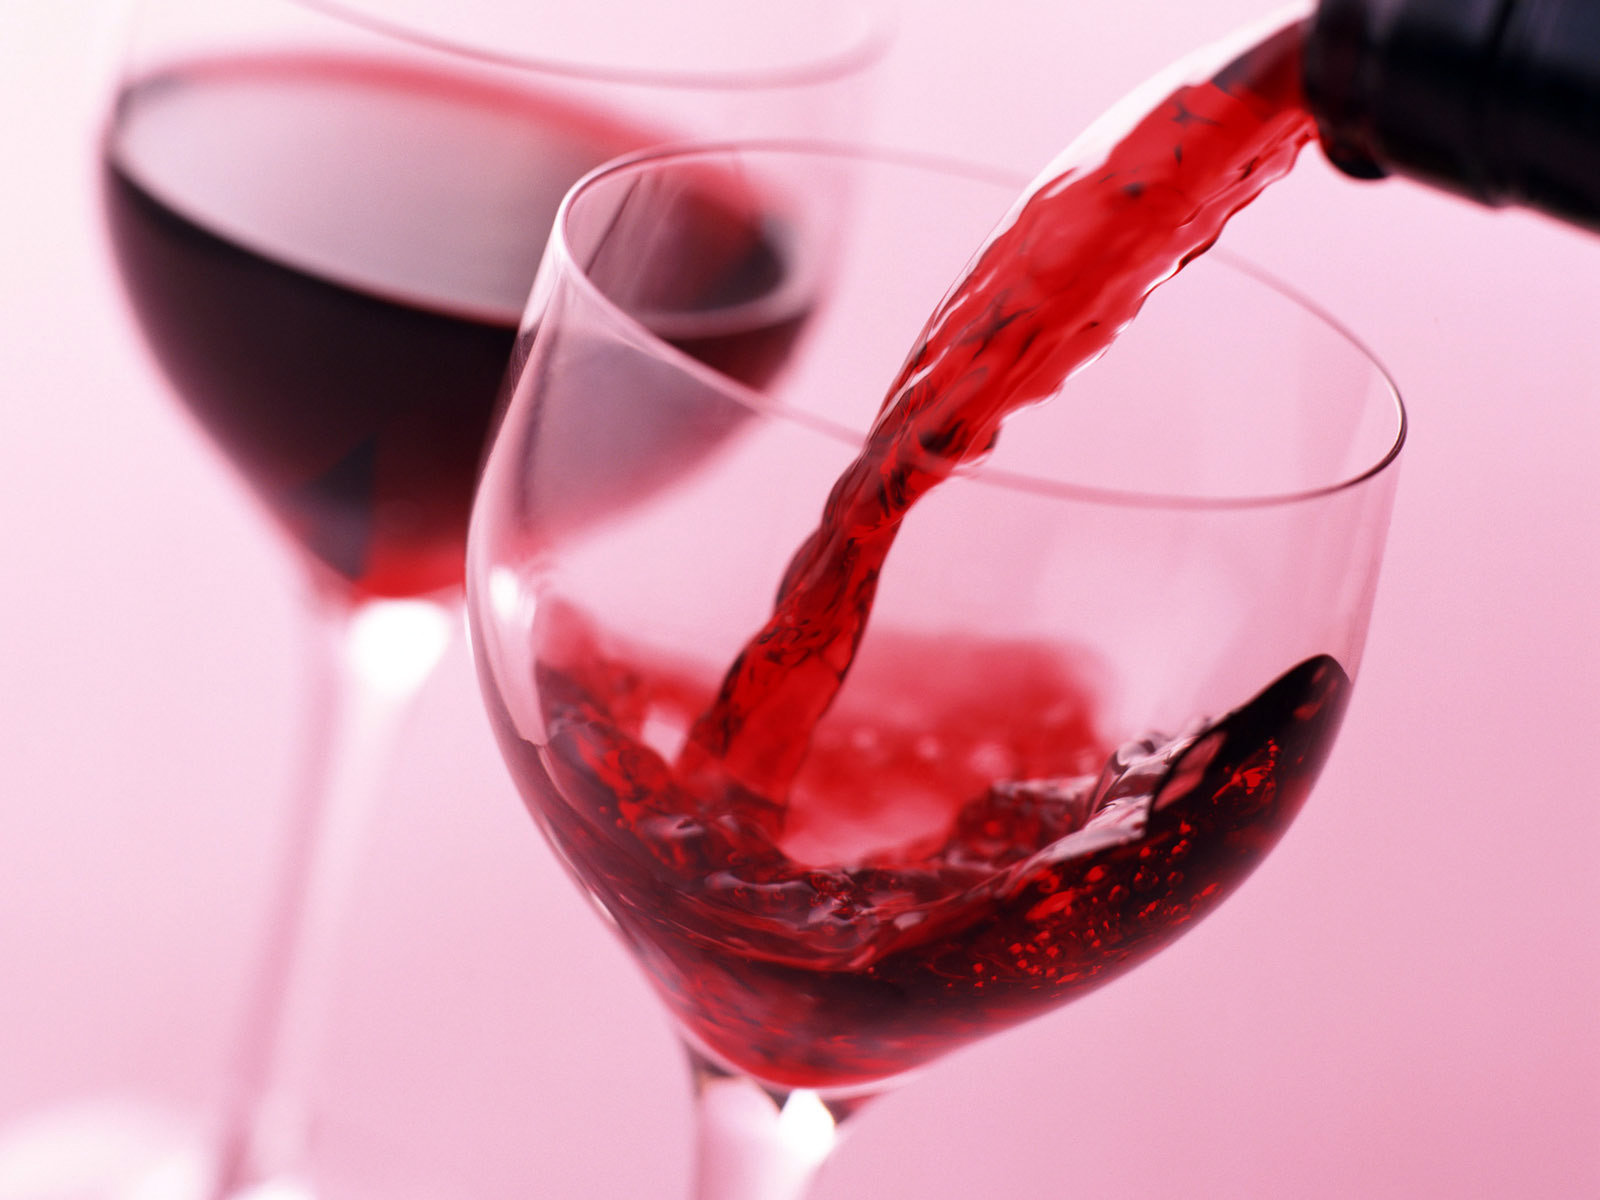 how to choose a good red wint